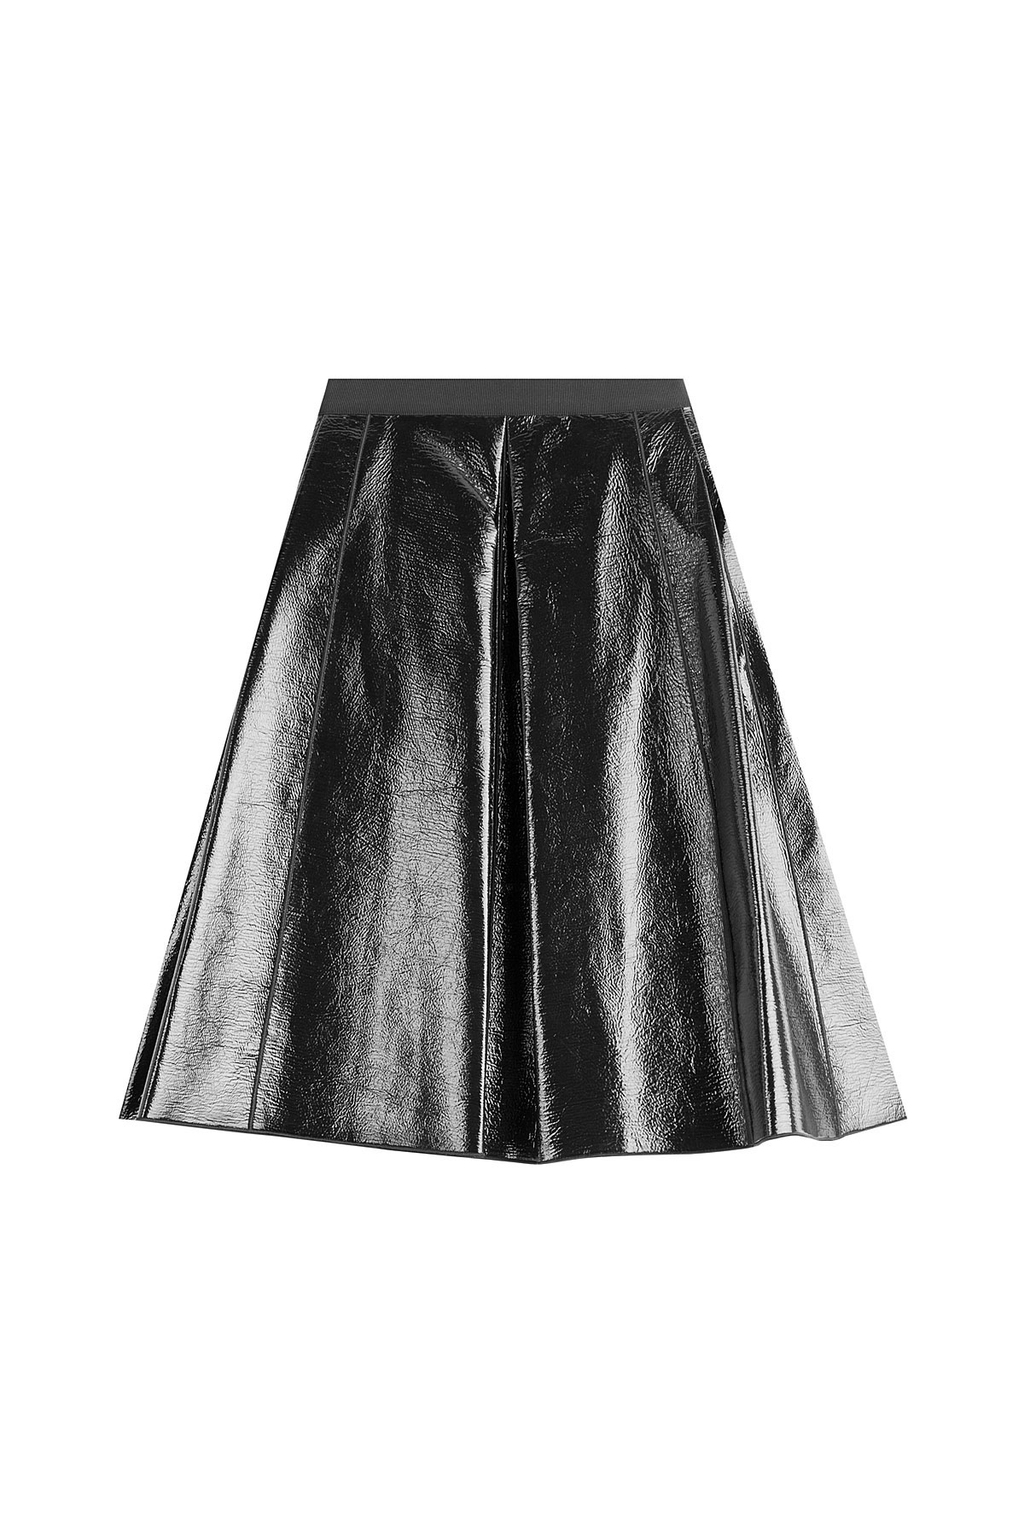 Faux Leather Skirt - pattern: plain; fit: loose/voluminous; waist: mid/regular rise; predominant colour: black; occasions: evening; length: on the knee; style: a-line; texture group: leather; pattern type: fabric; fibres: pvc/polyurethene - stretch; season: a/w 2016; wardrobe: event